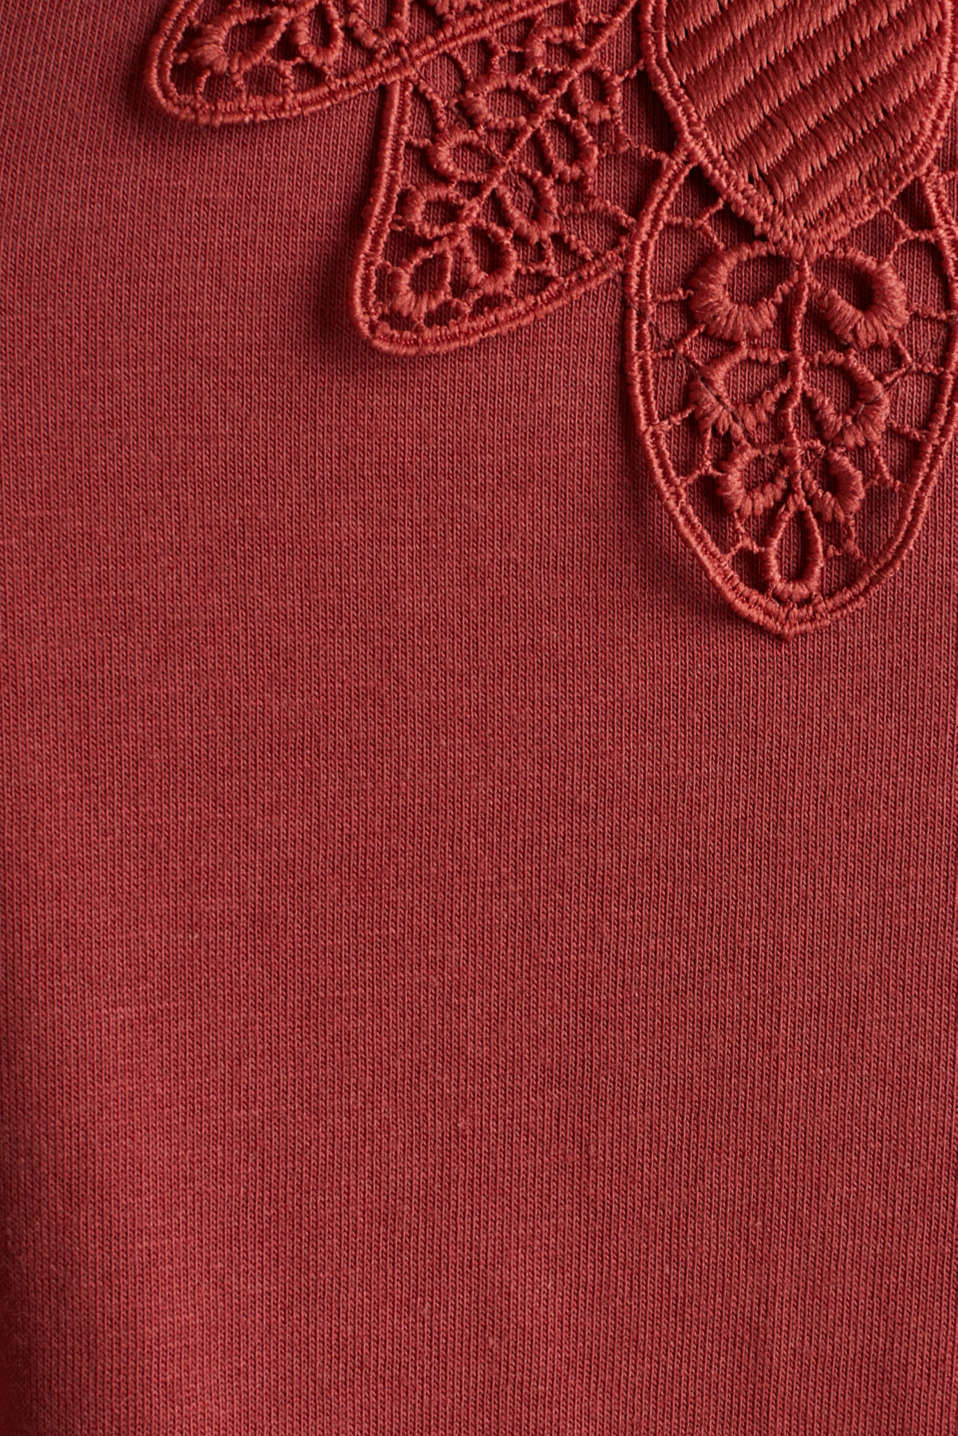 Vest top with lace, DARK RED, detail image number 4